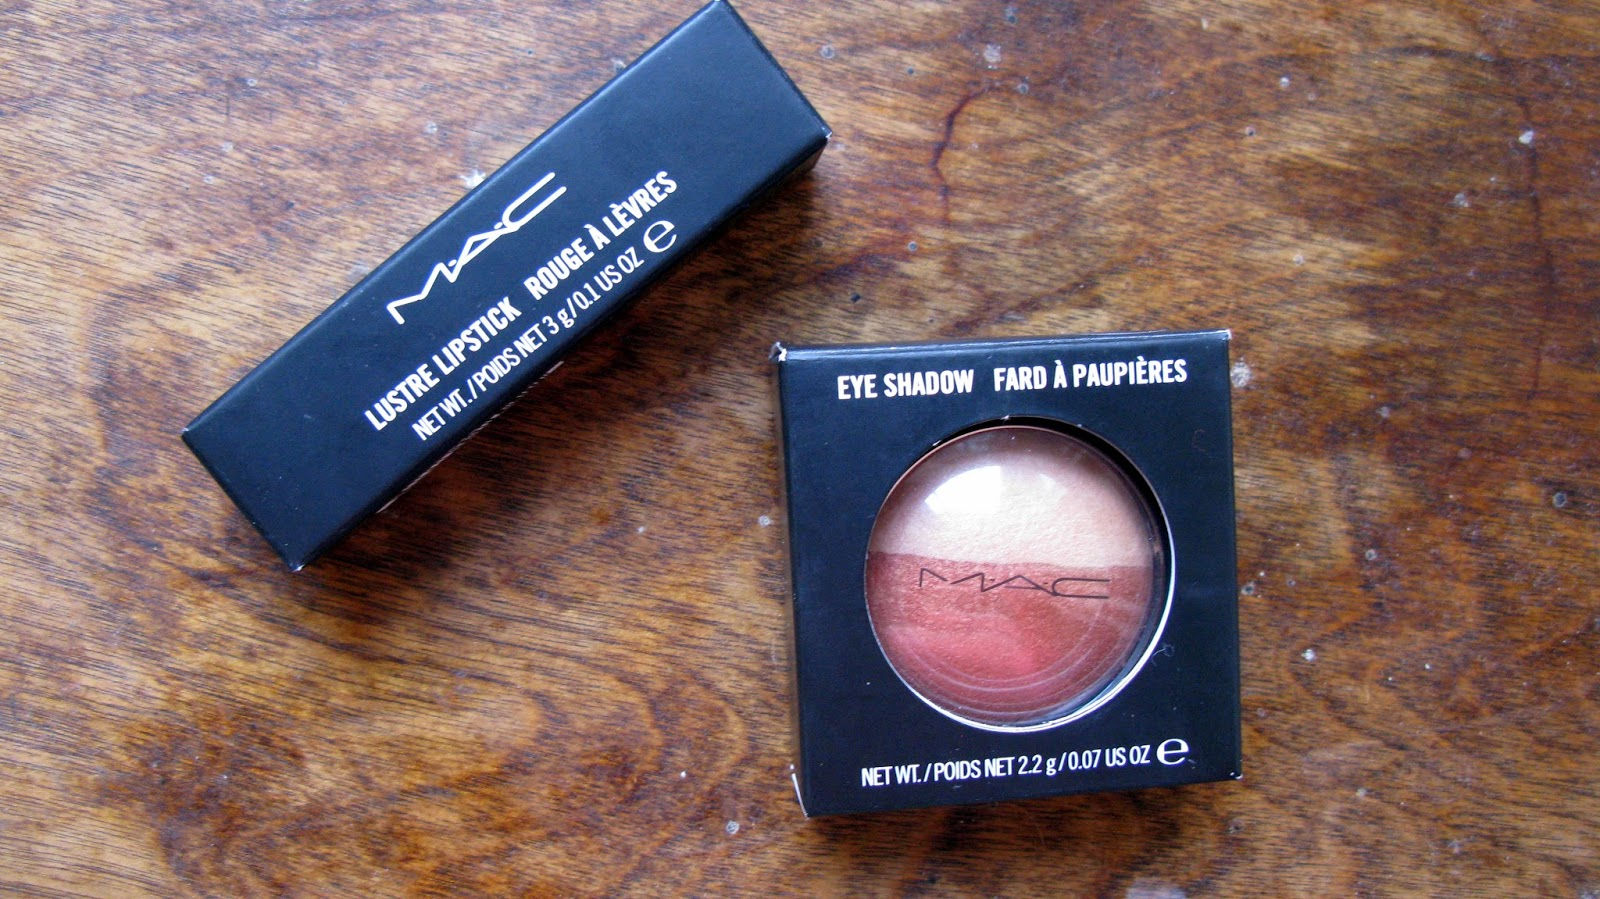 MAC shy shine lipstick MAC mix and switch eyeshadow duo review uk beauty blog